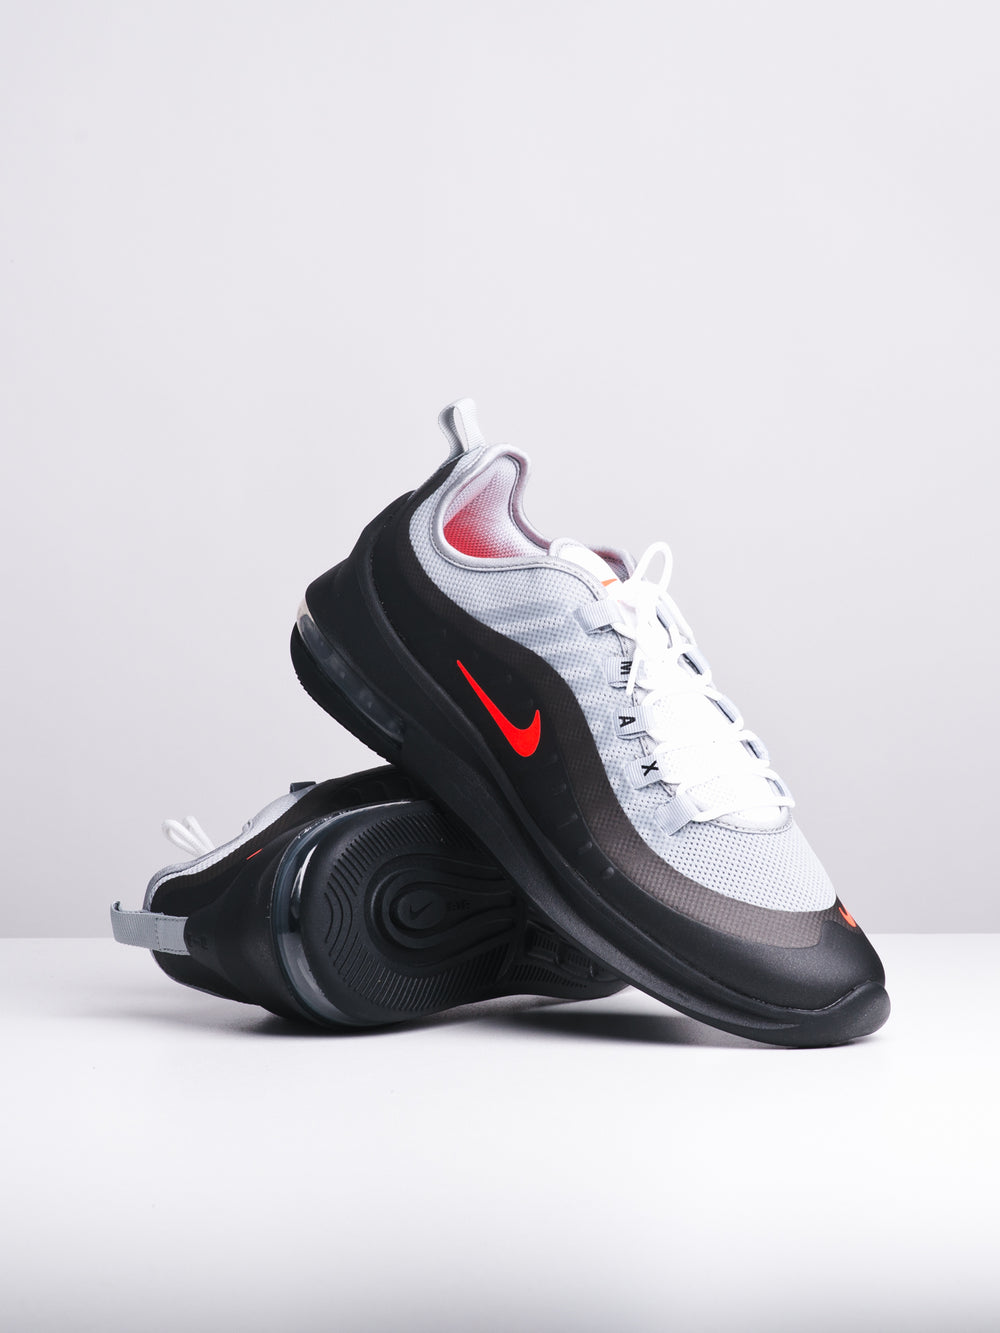 release info on another chance size 7 MENS AIR MAX AXIS GREY/CRIMSON SNEAKERS - CLEARANCE